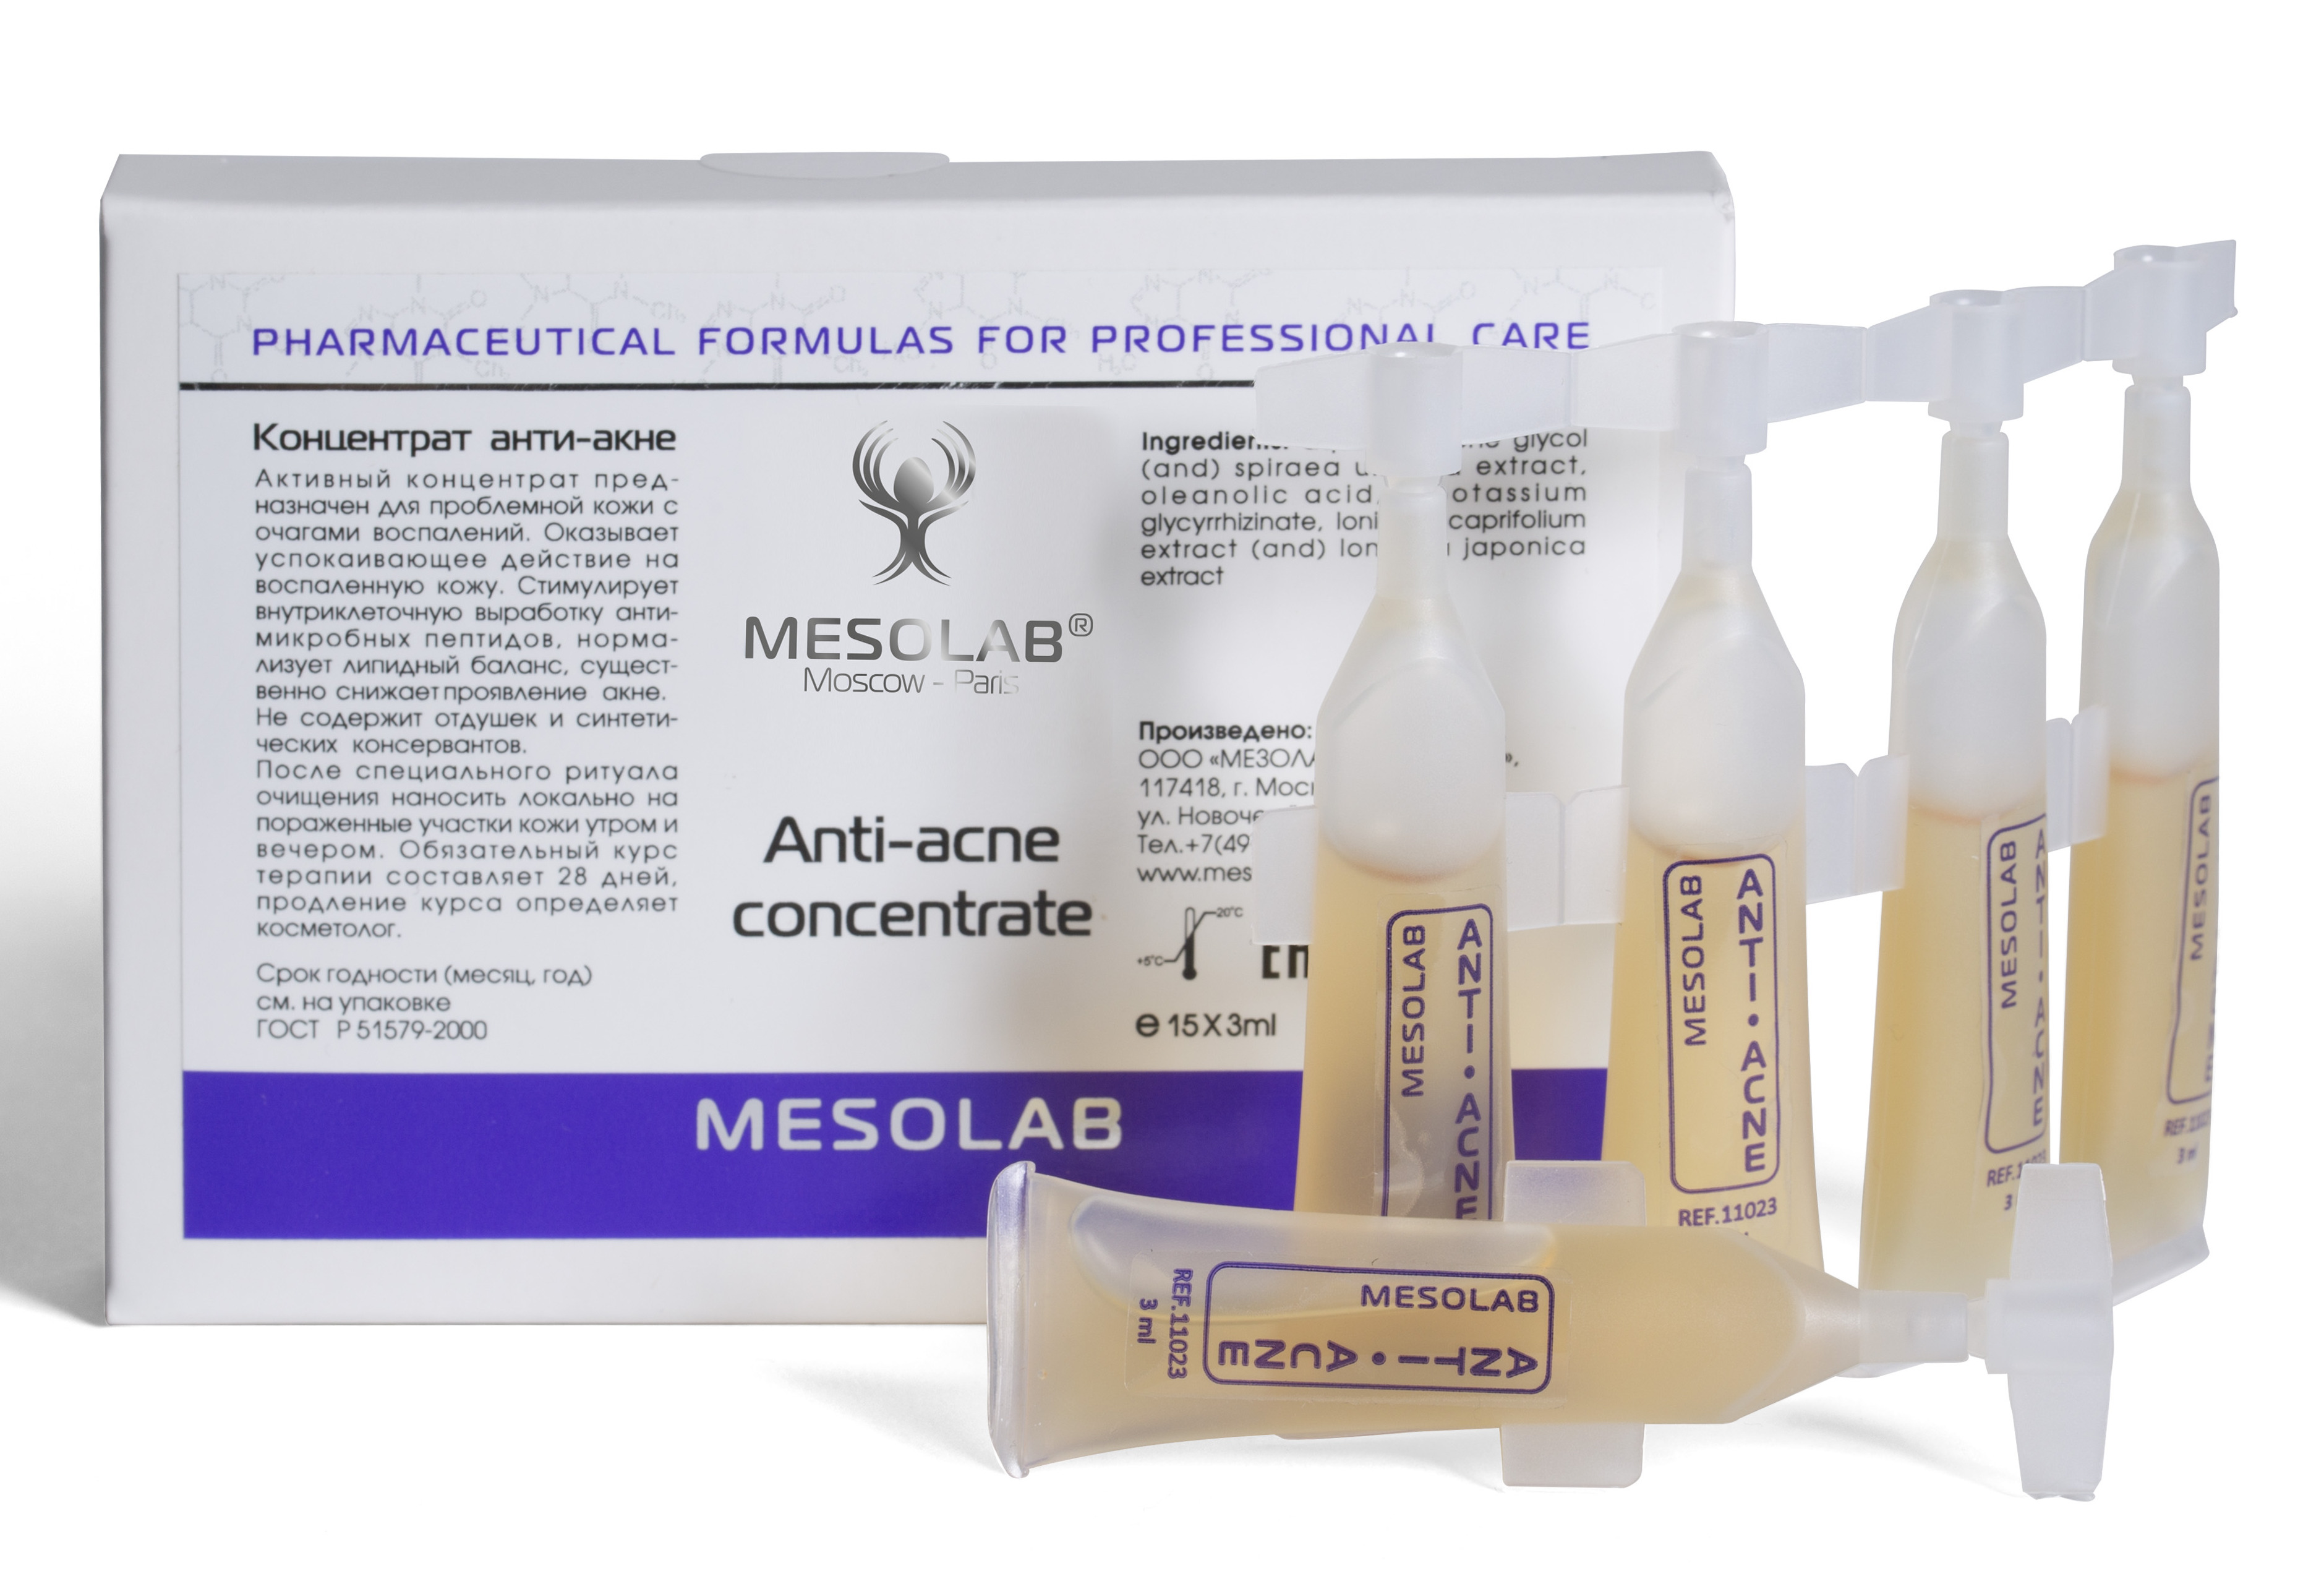 MESOLAB Концентрат анти-акне / ANTI-ACNE CONCENTRATE 10*3 мл -  Концентраты